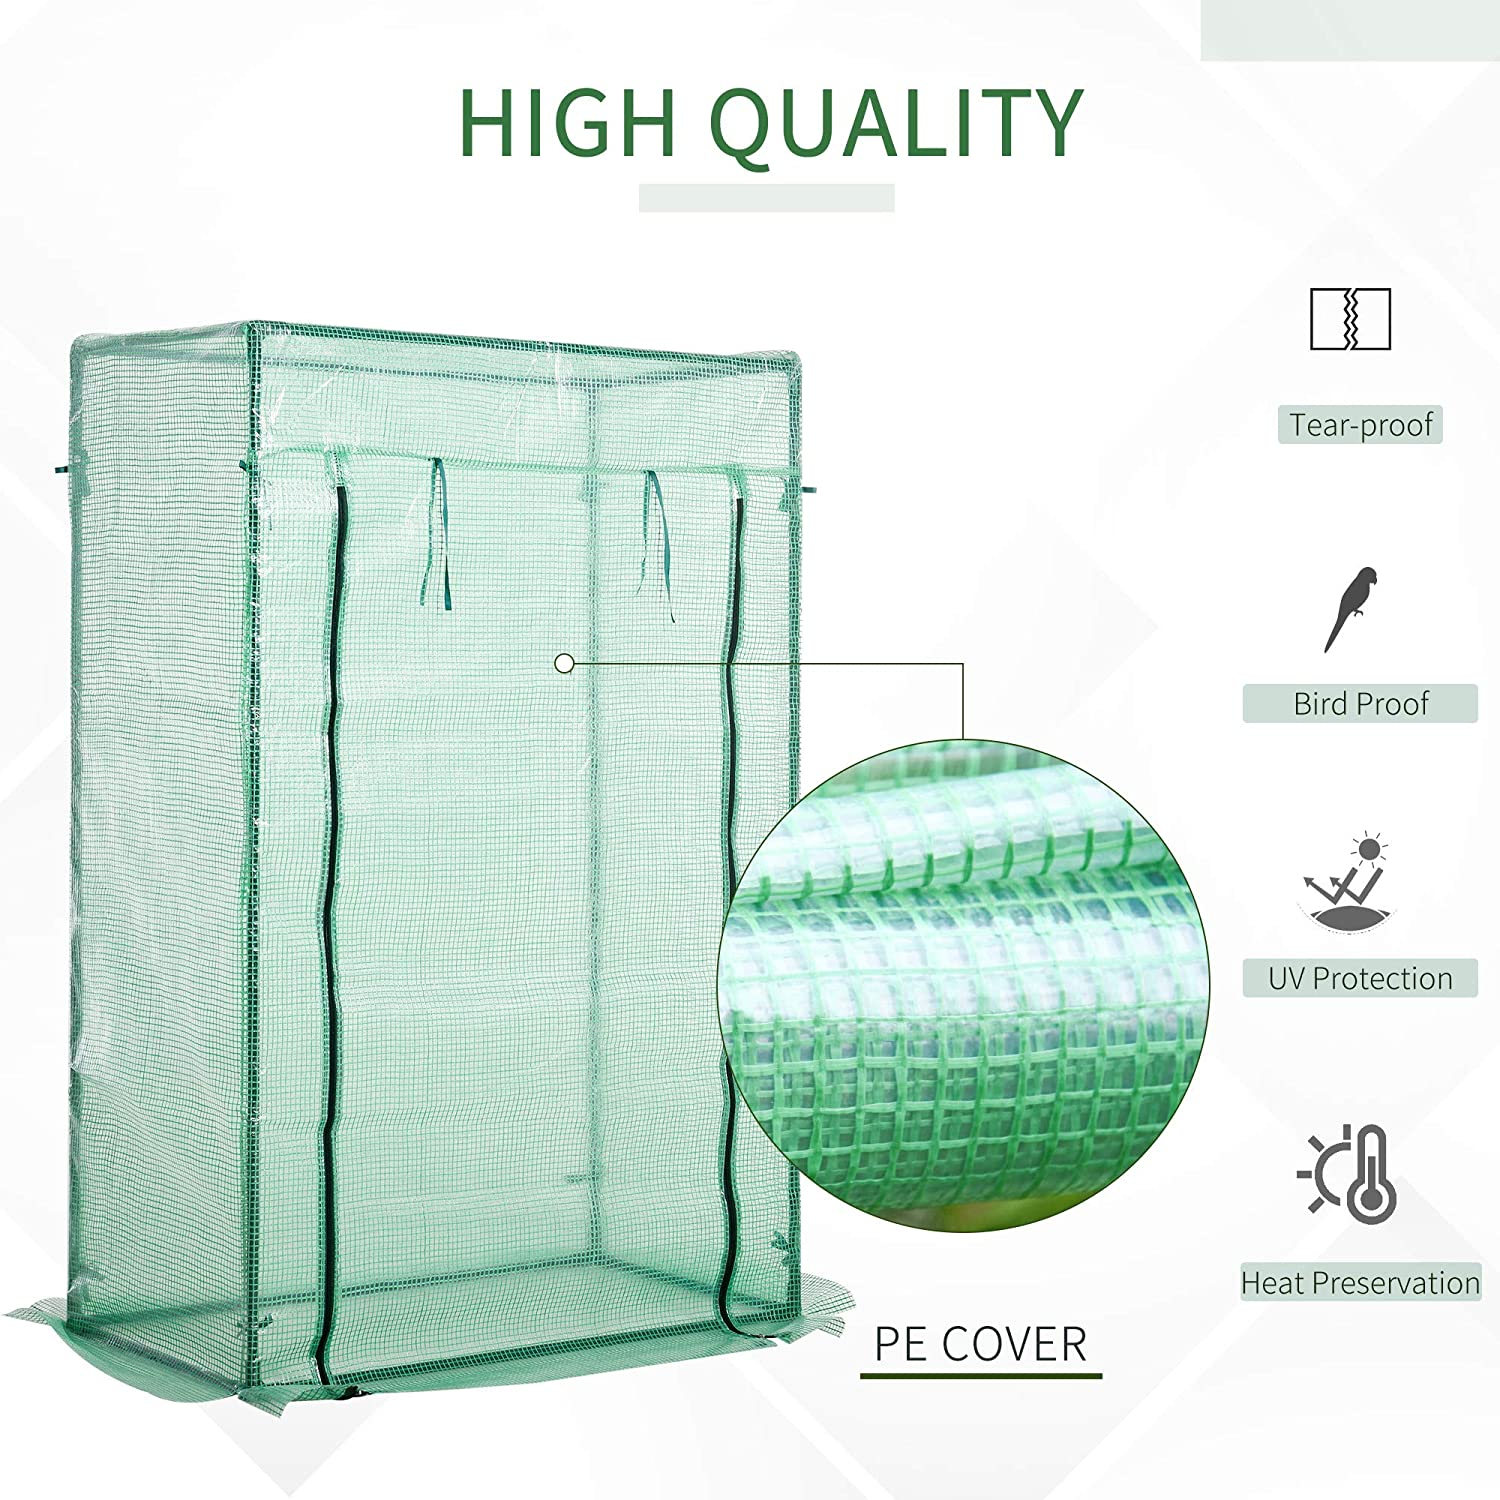 Outsunny 100 x 50 x 150cm Greenhouse Steel Frame PE Cover with Roll-up Door Outdoor for Backyard Garden Balcony